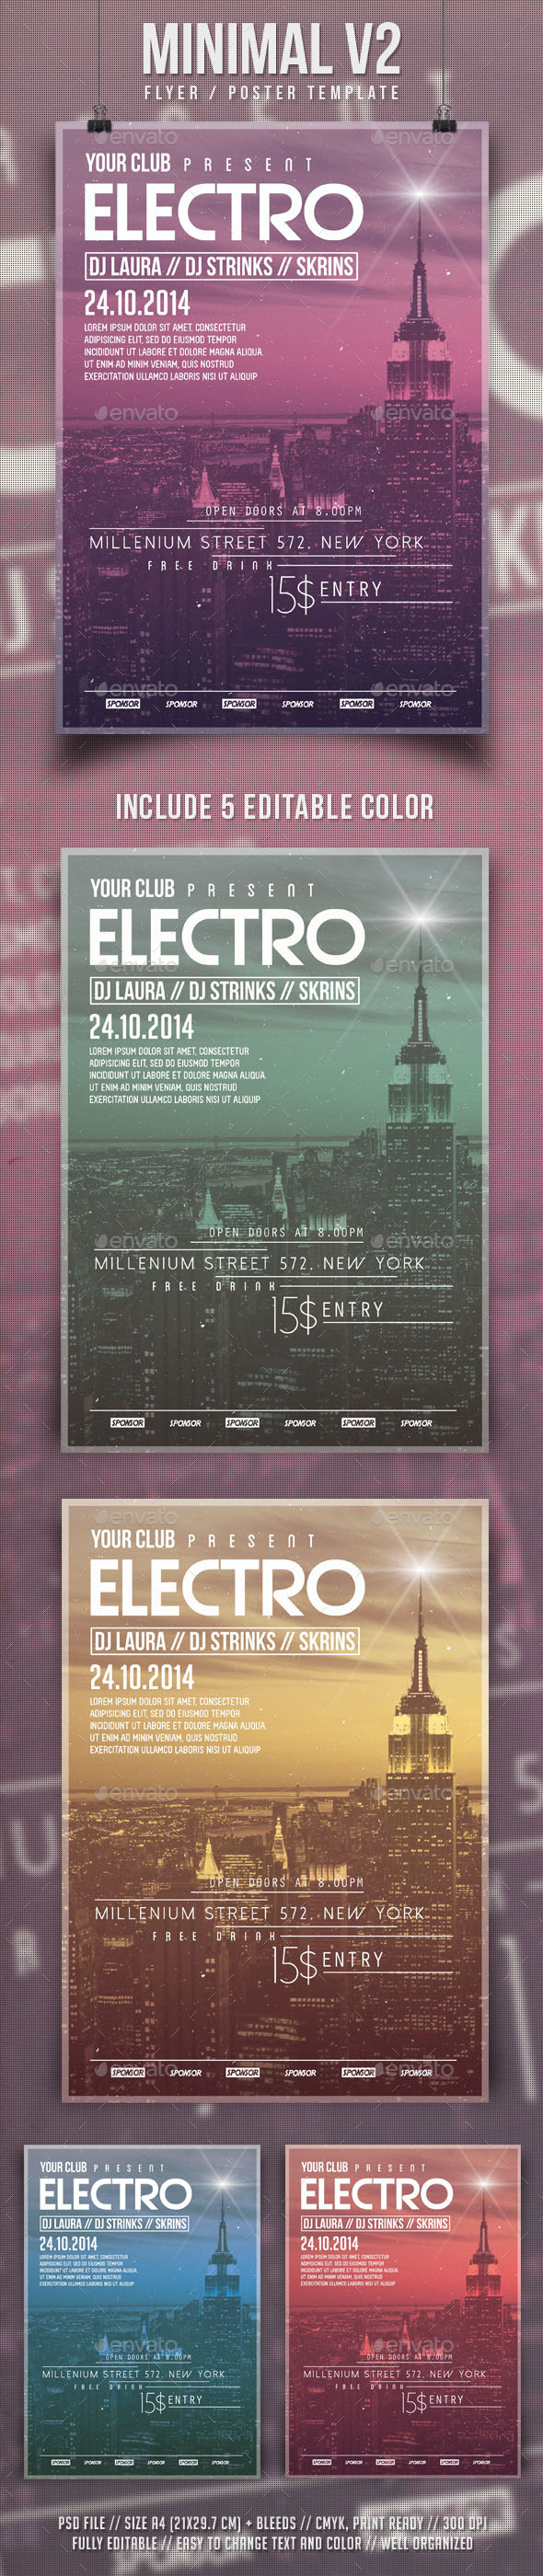 Minimal V2 Flyer Template - Clubs & Parties Events